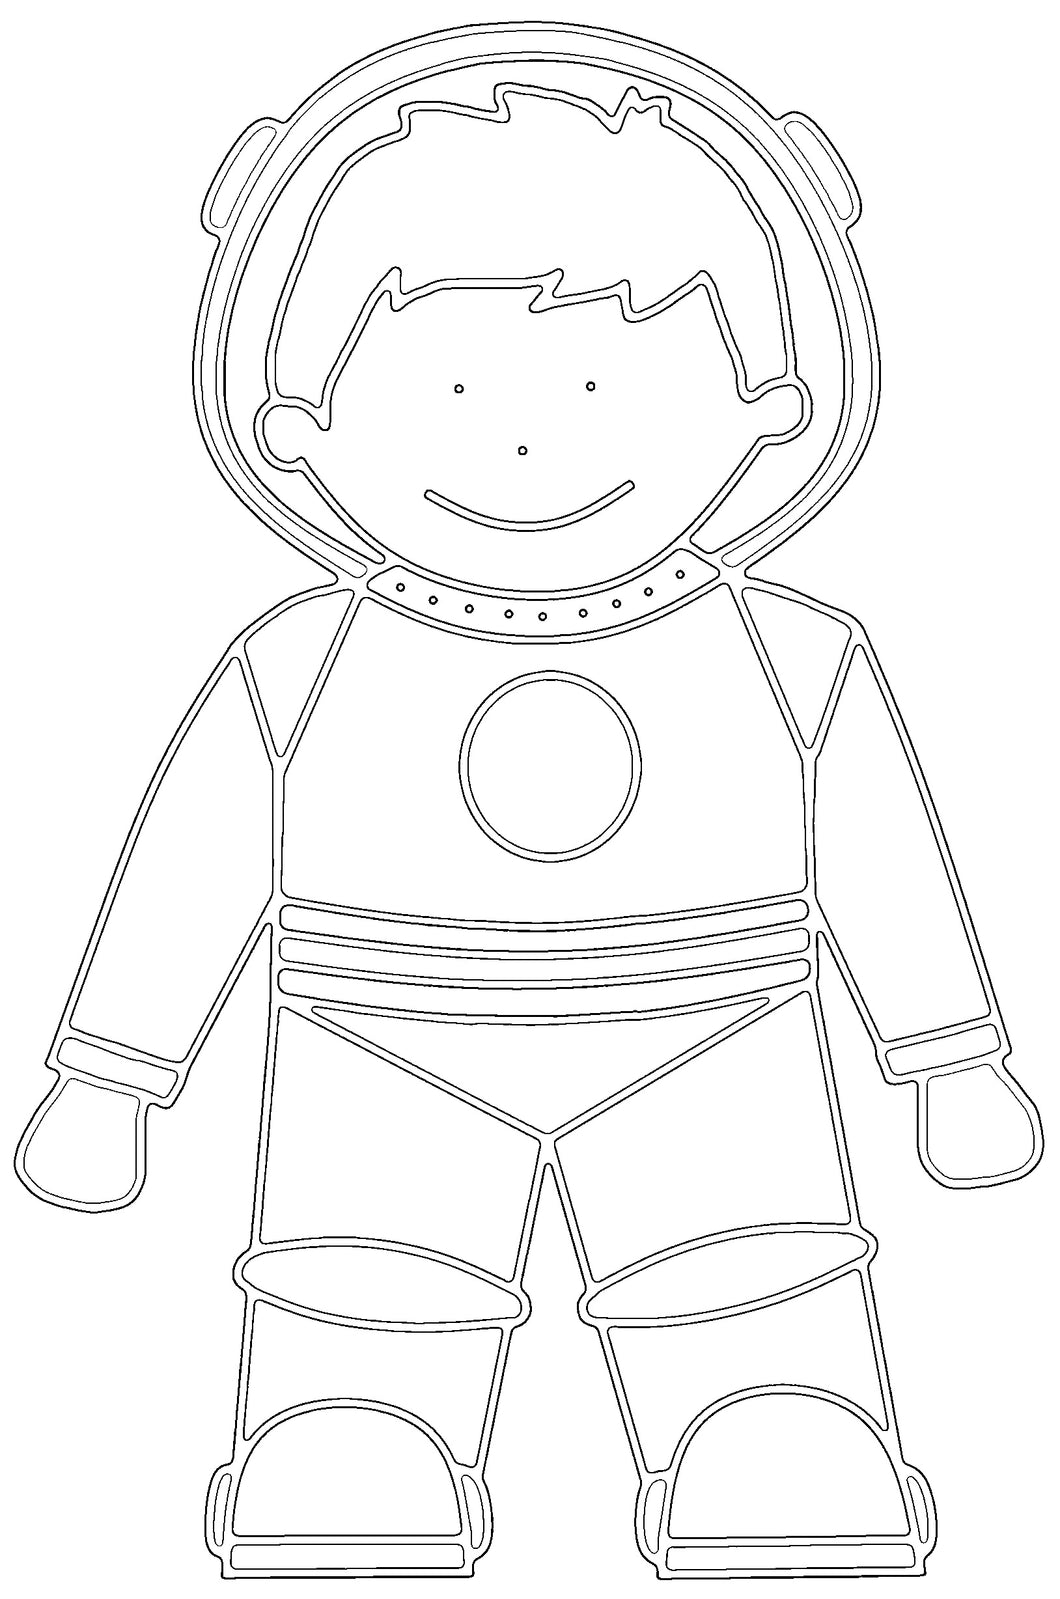 Free Astronaut Printable Colouring In Picture